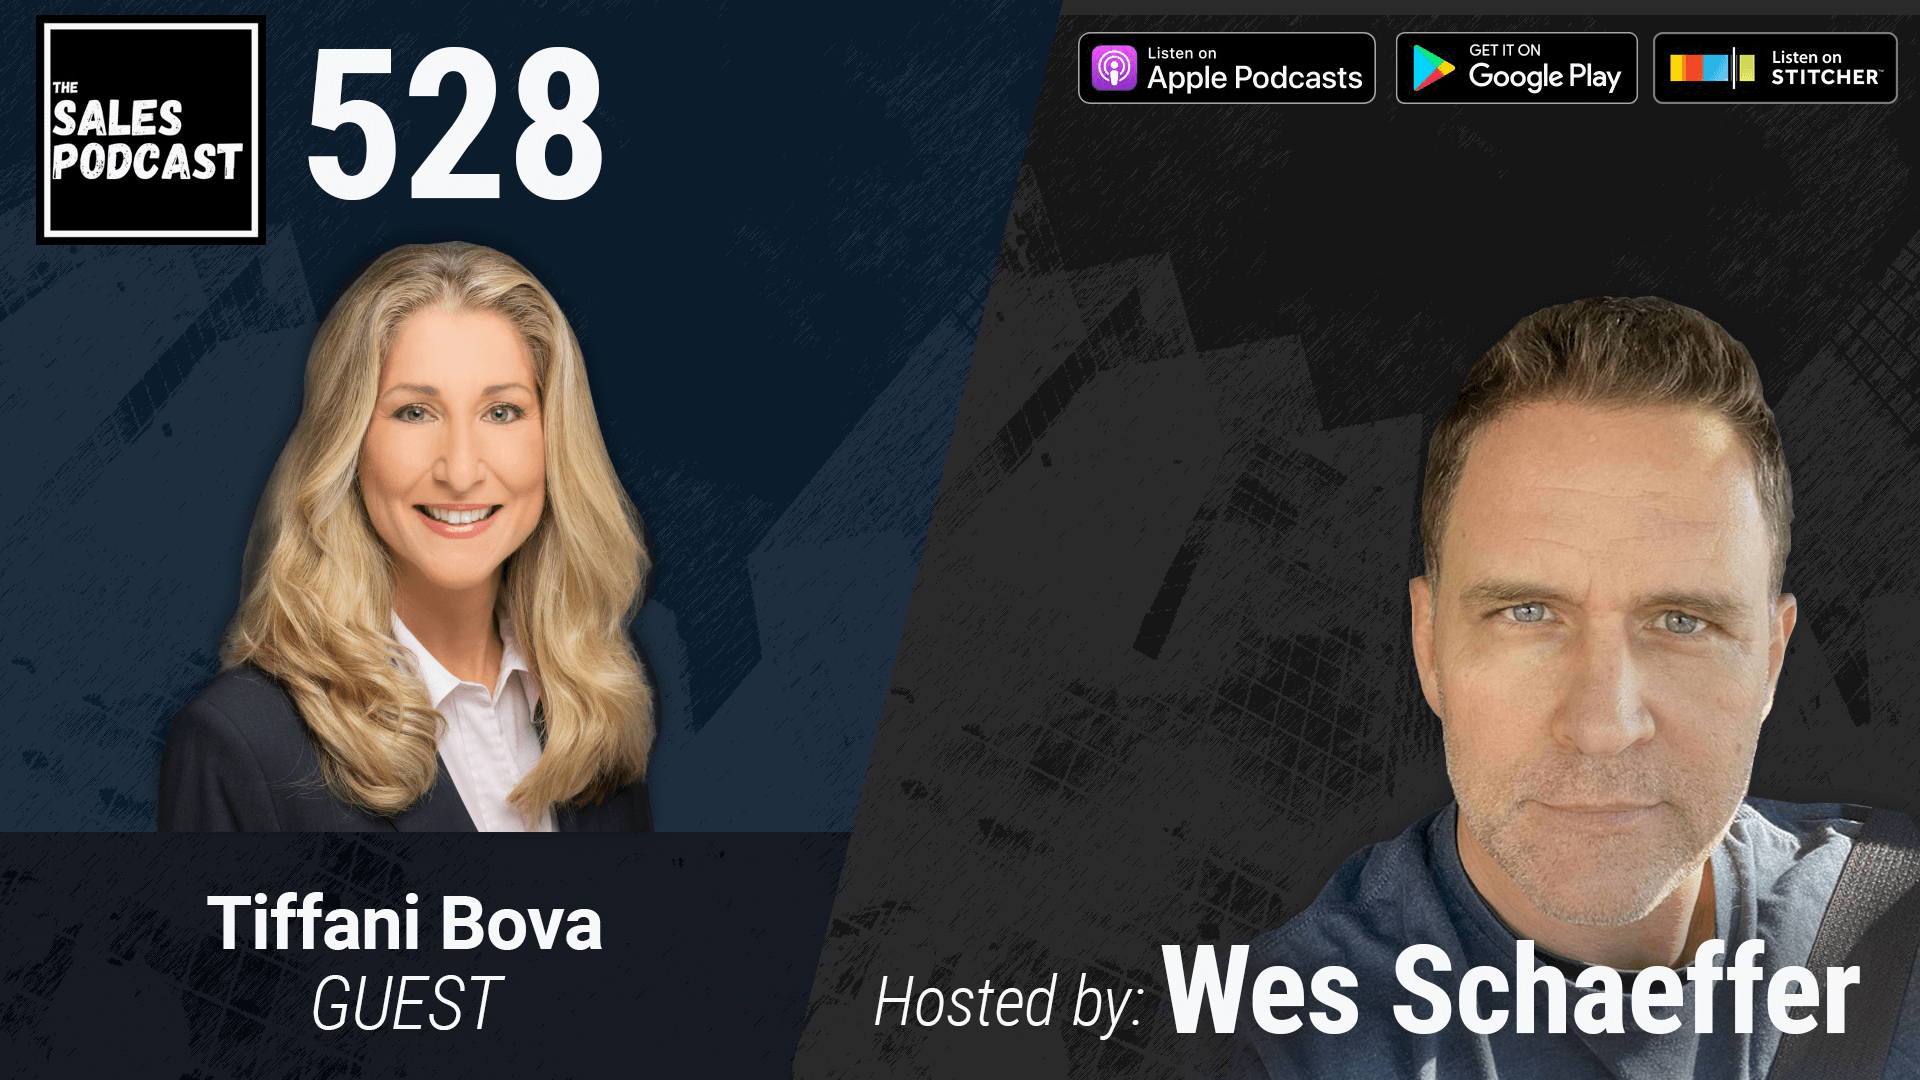 Grow Your Growth IQ With Tiffani Bova on The Sales Podcast with Wes Schaeffer, The Sales Whisperer®